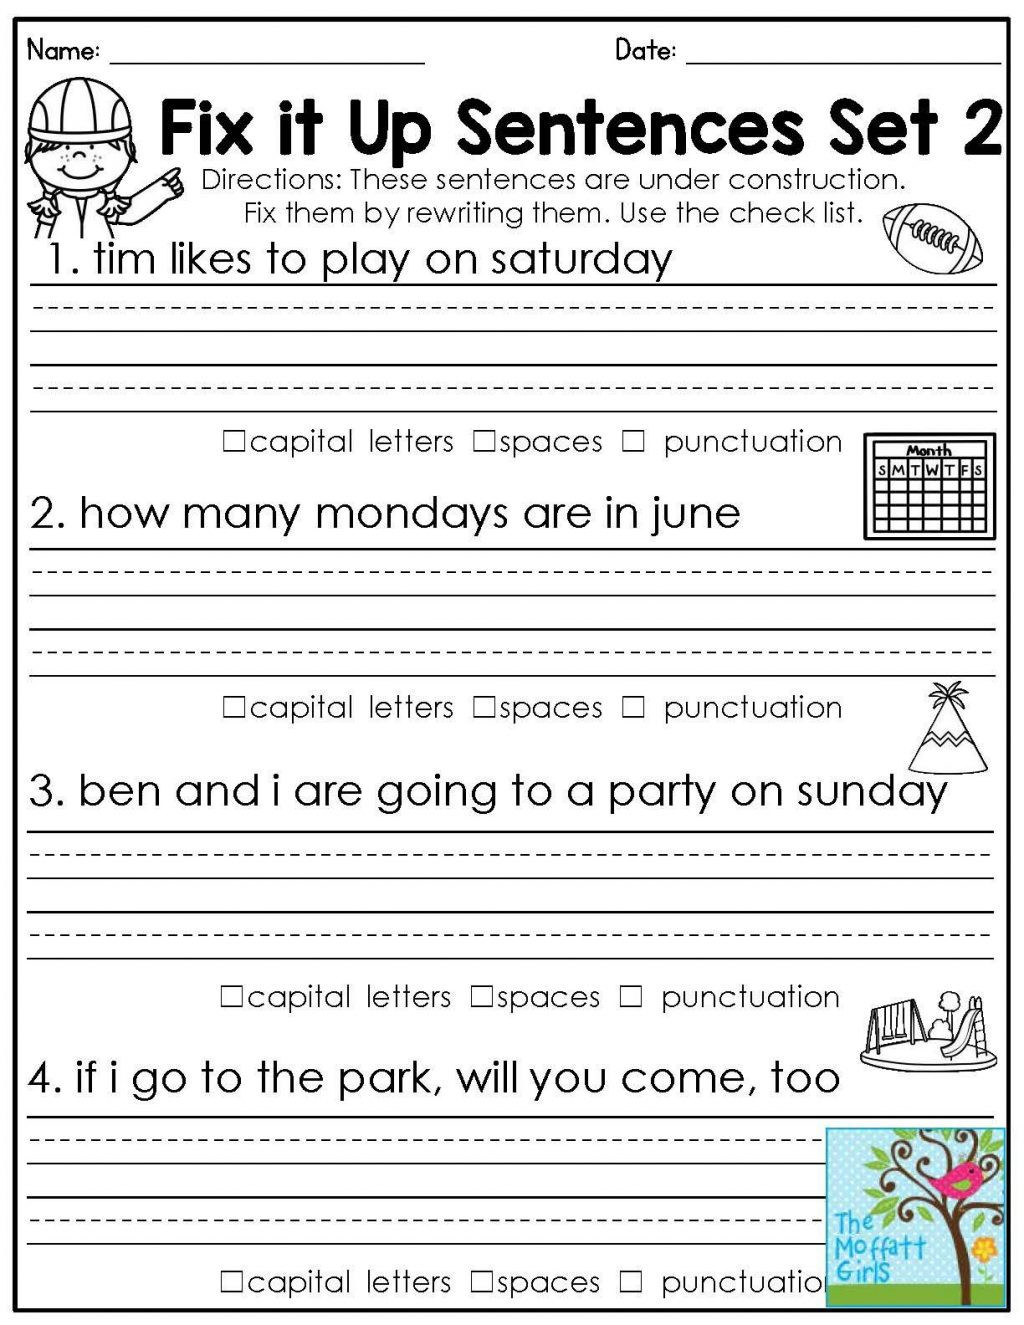 3rd Grade Grammar Worksheets Free 4 Free Grammar Worksheets Third Grade 3 Capitalization